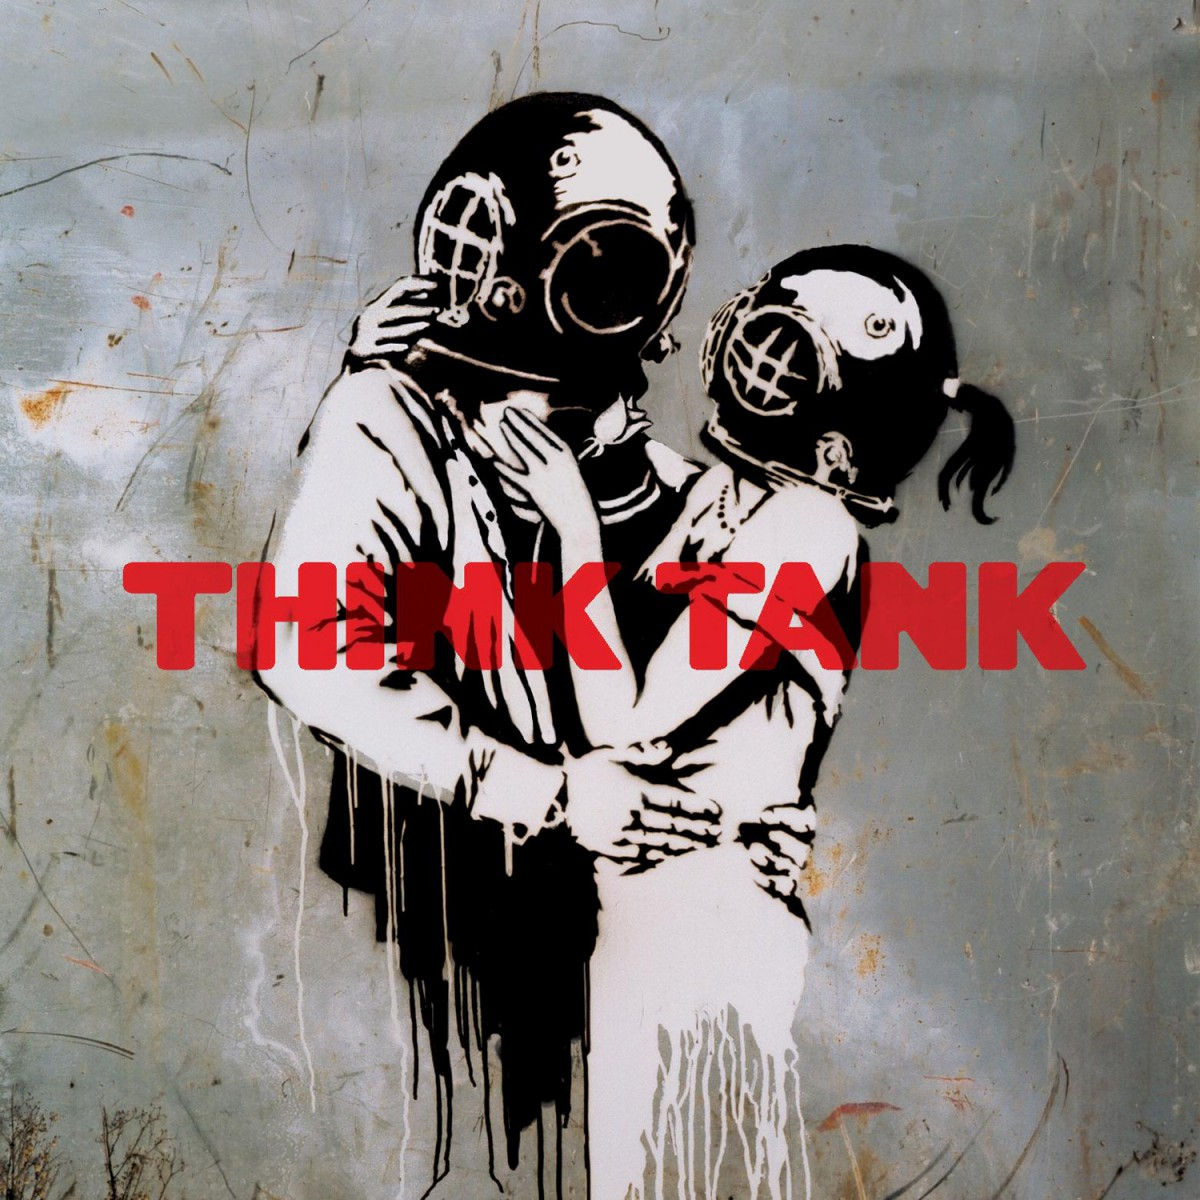 thinktank-1200x1200.jpg